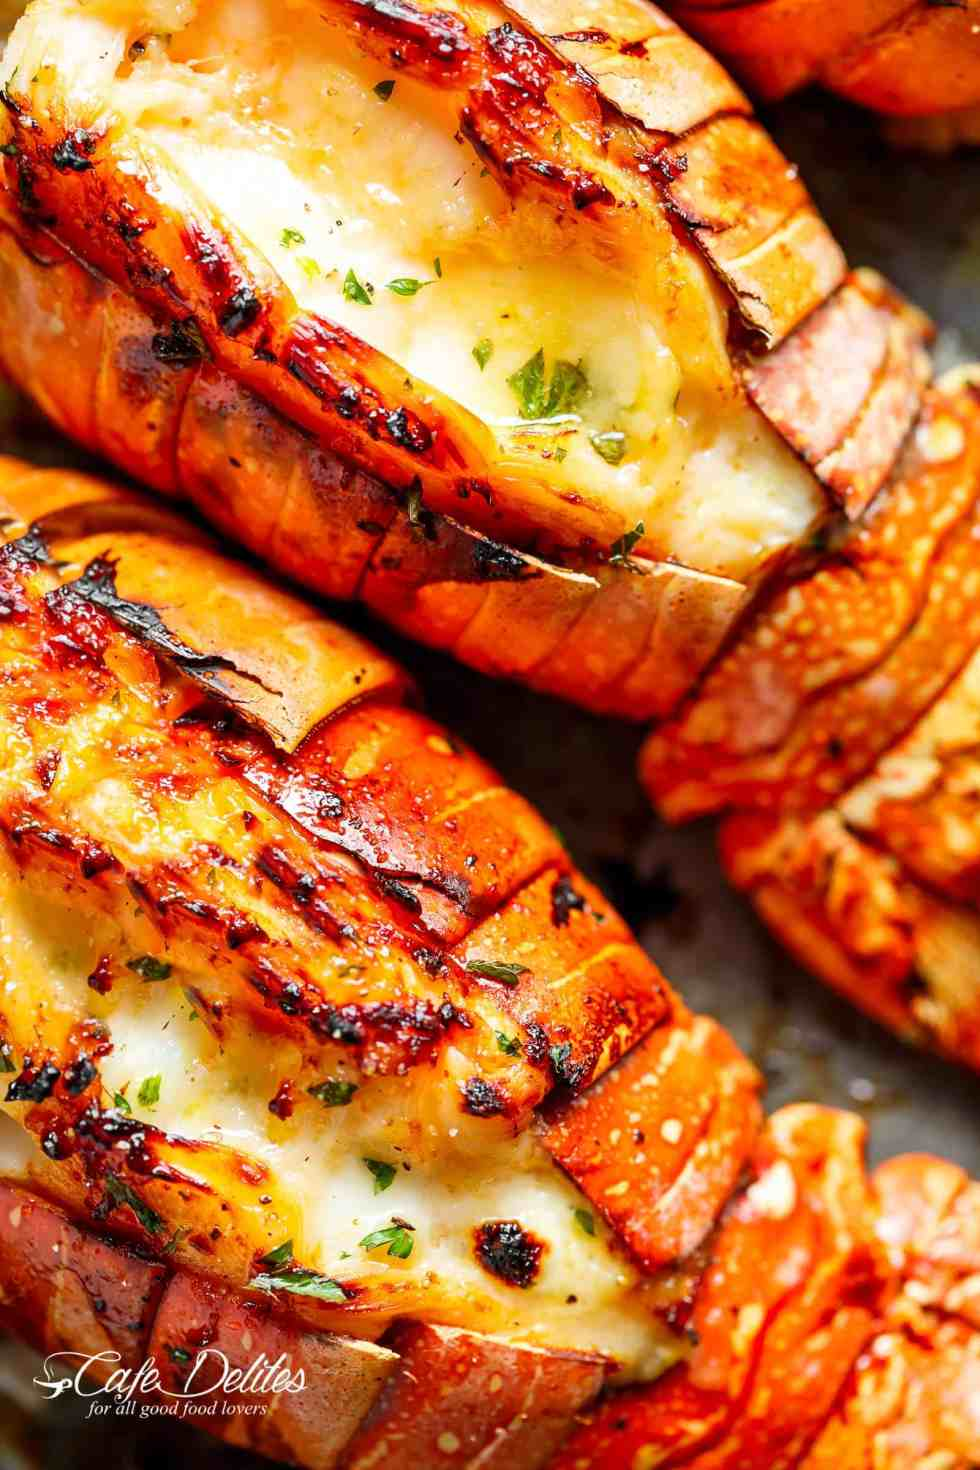 Lobster Tails with Honey Garlic Butter White Wine Sauce - Cafe Delites